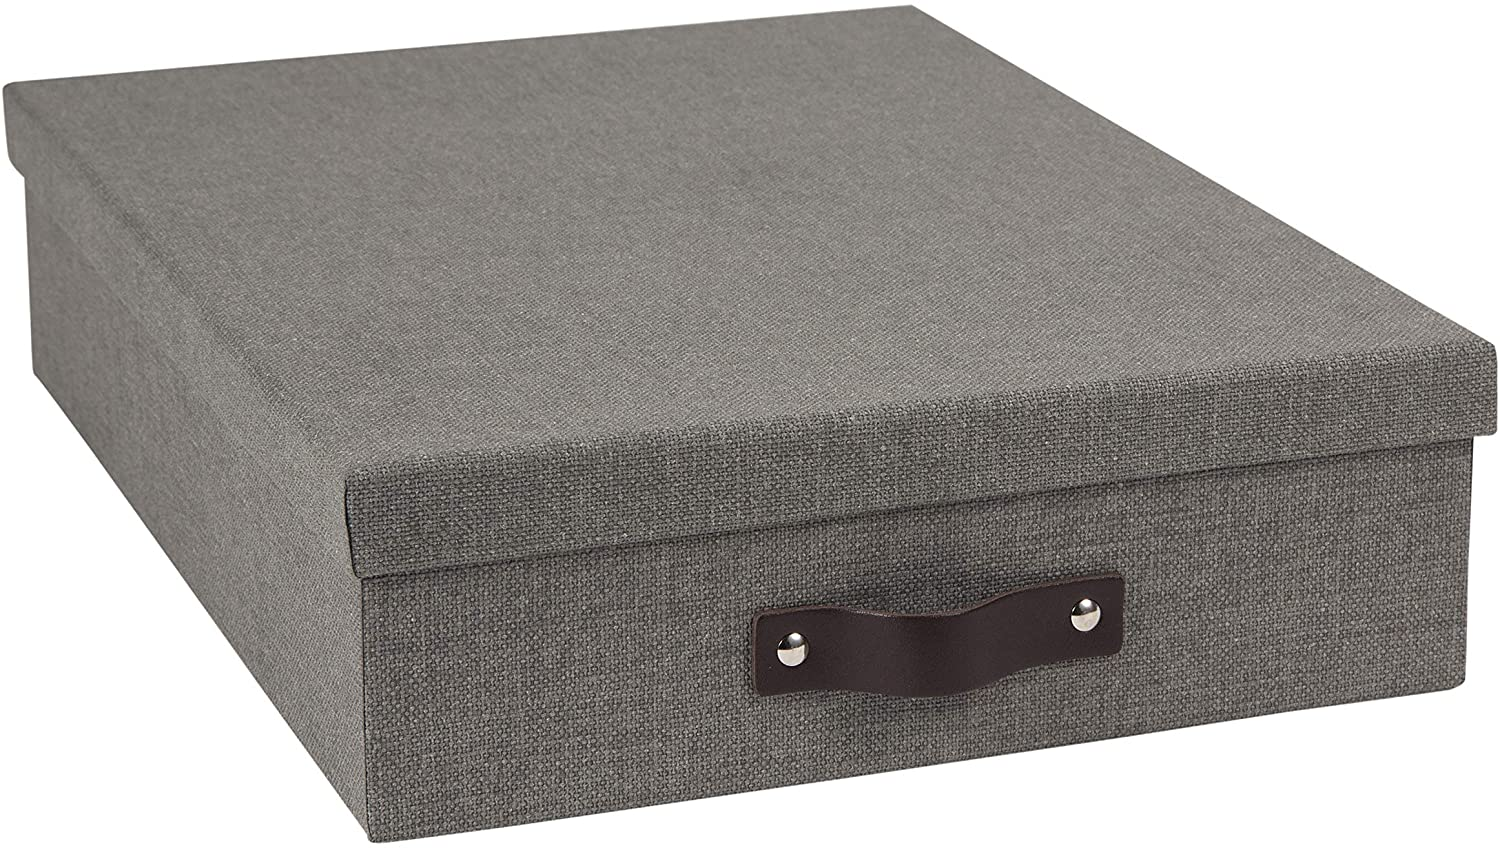 Bigso Oskar Canvas Fiberboard Document Letter Box, 3.3 x 10.2 x 13.8 in, Grey